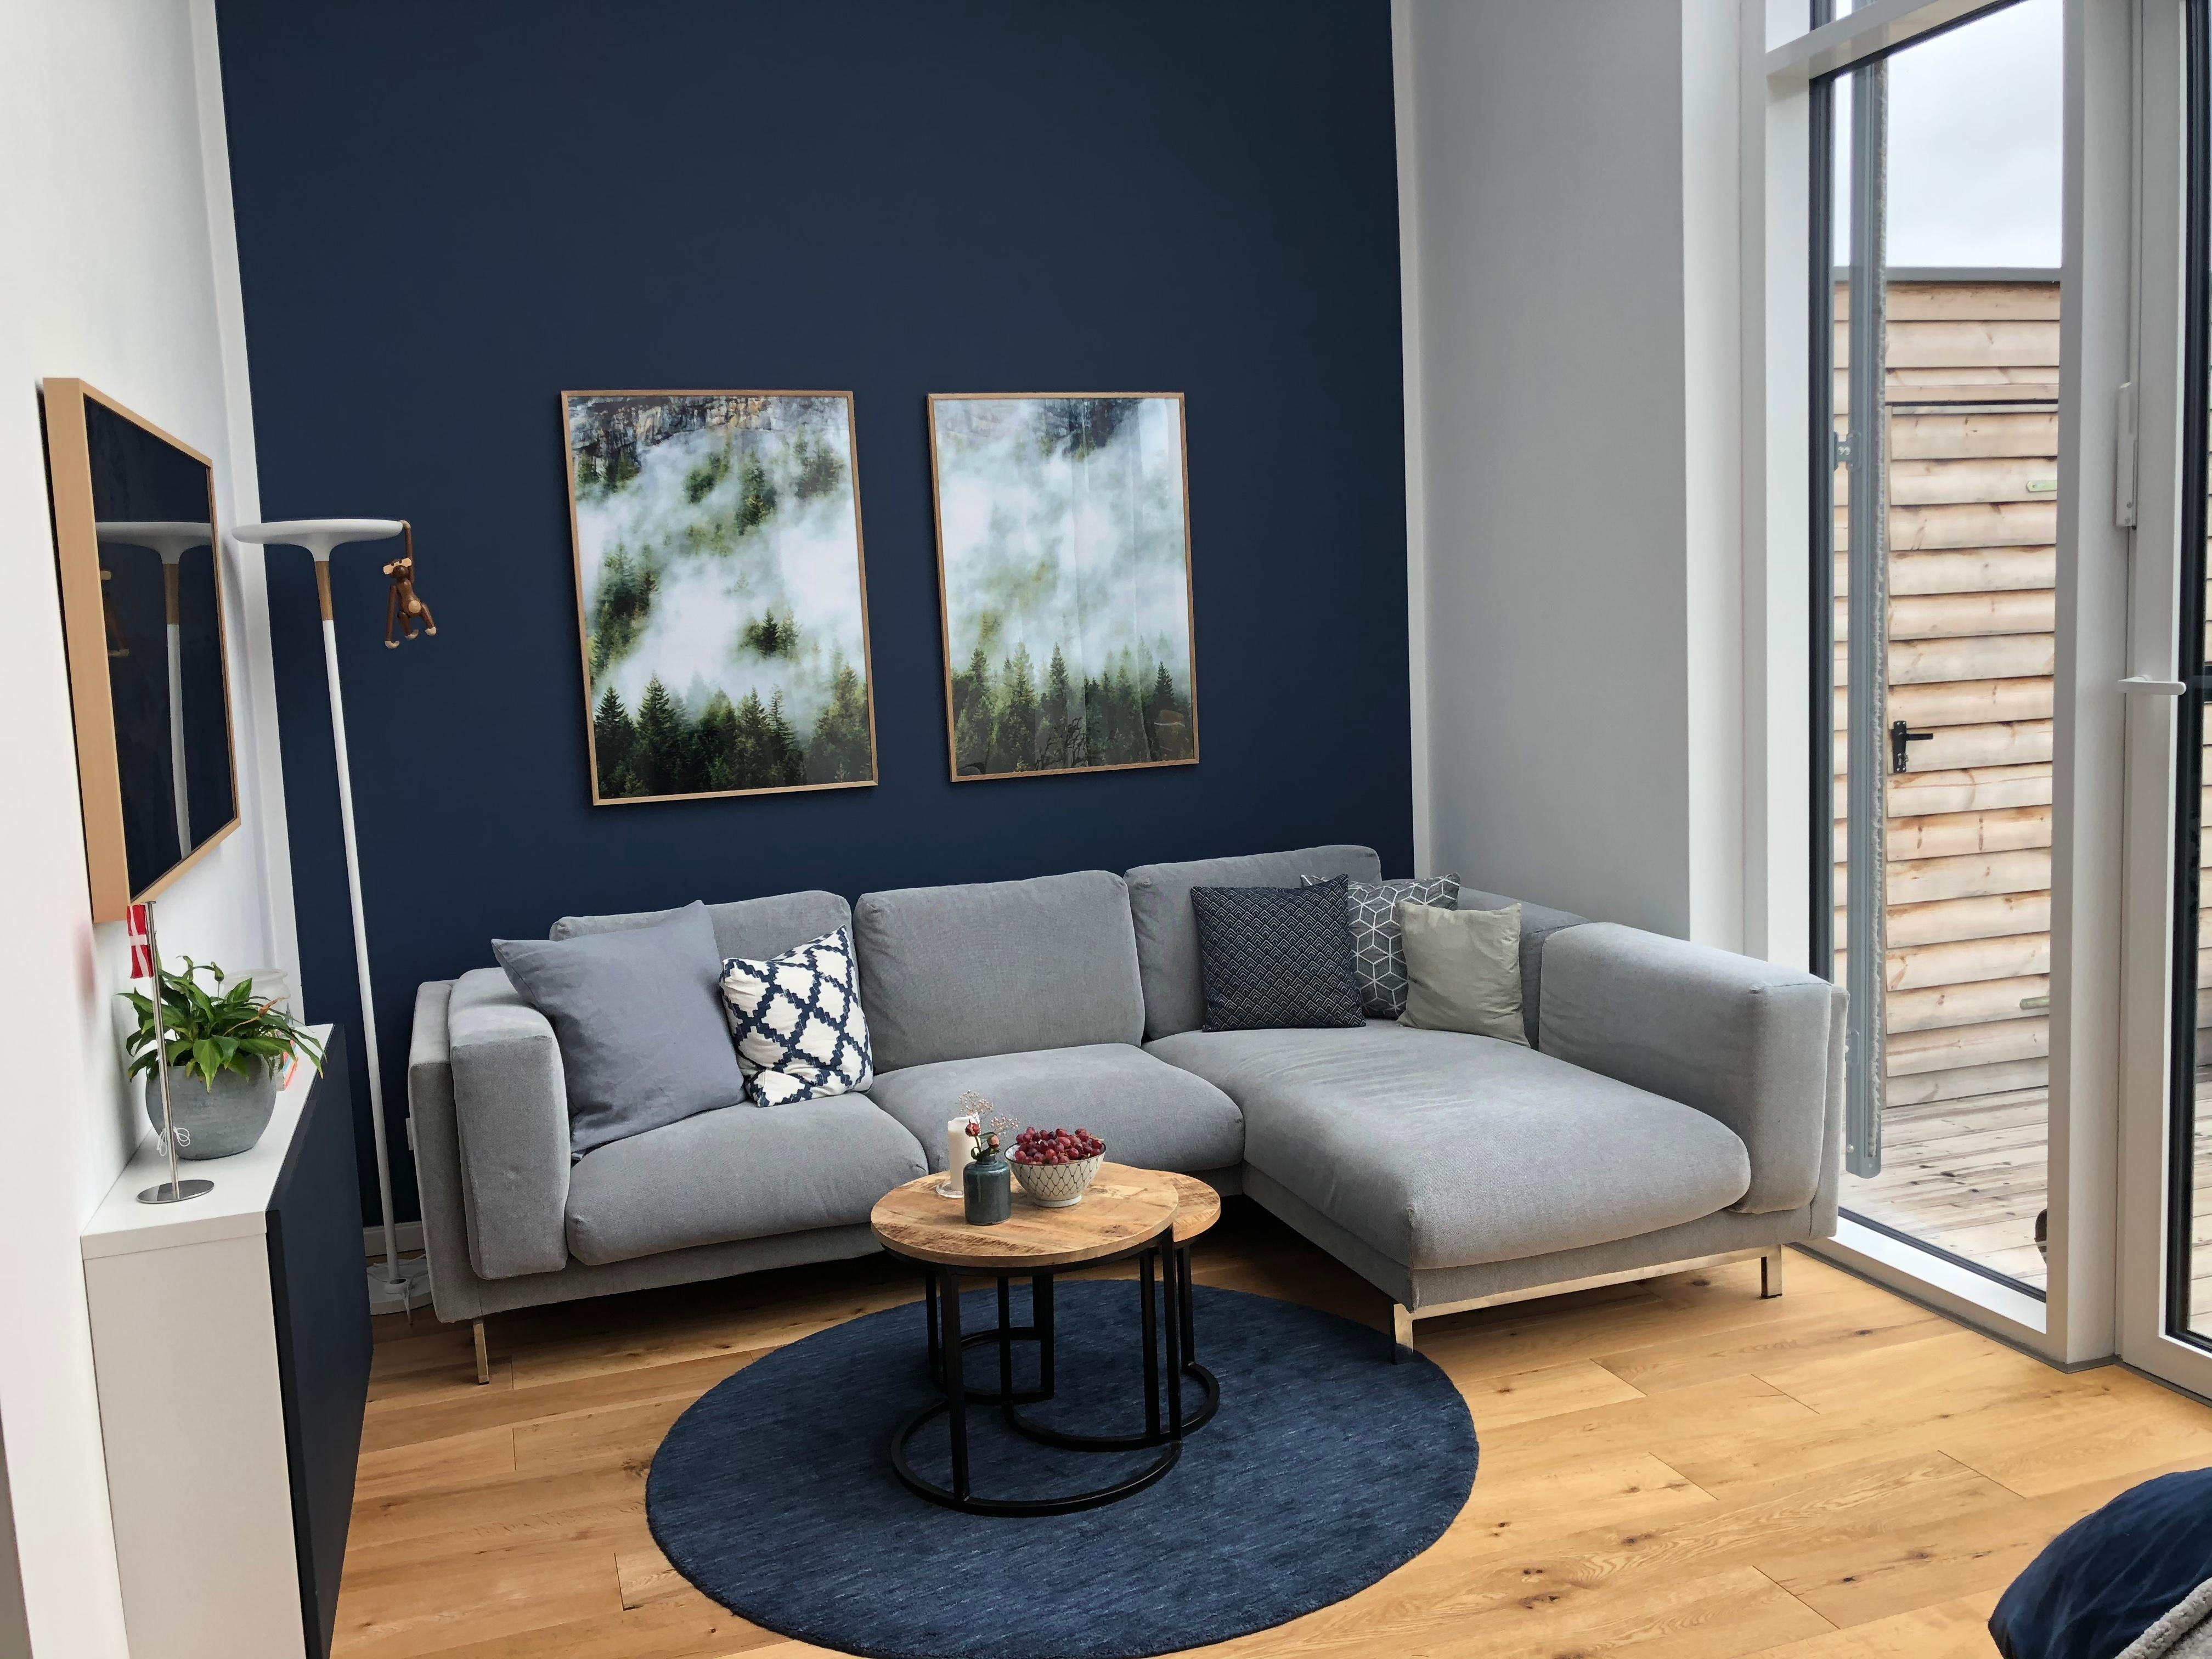 Blue is the new black wohnzimmer theframe chouch  589e66be f436 4b21 ab5e 7a23fe8fb25c